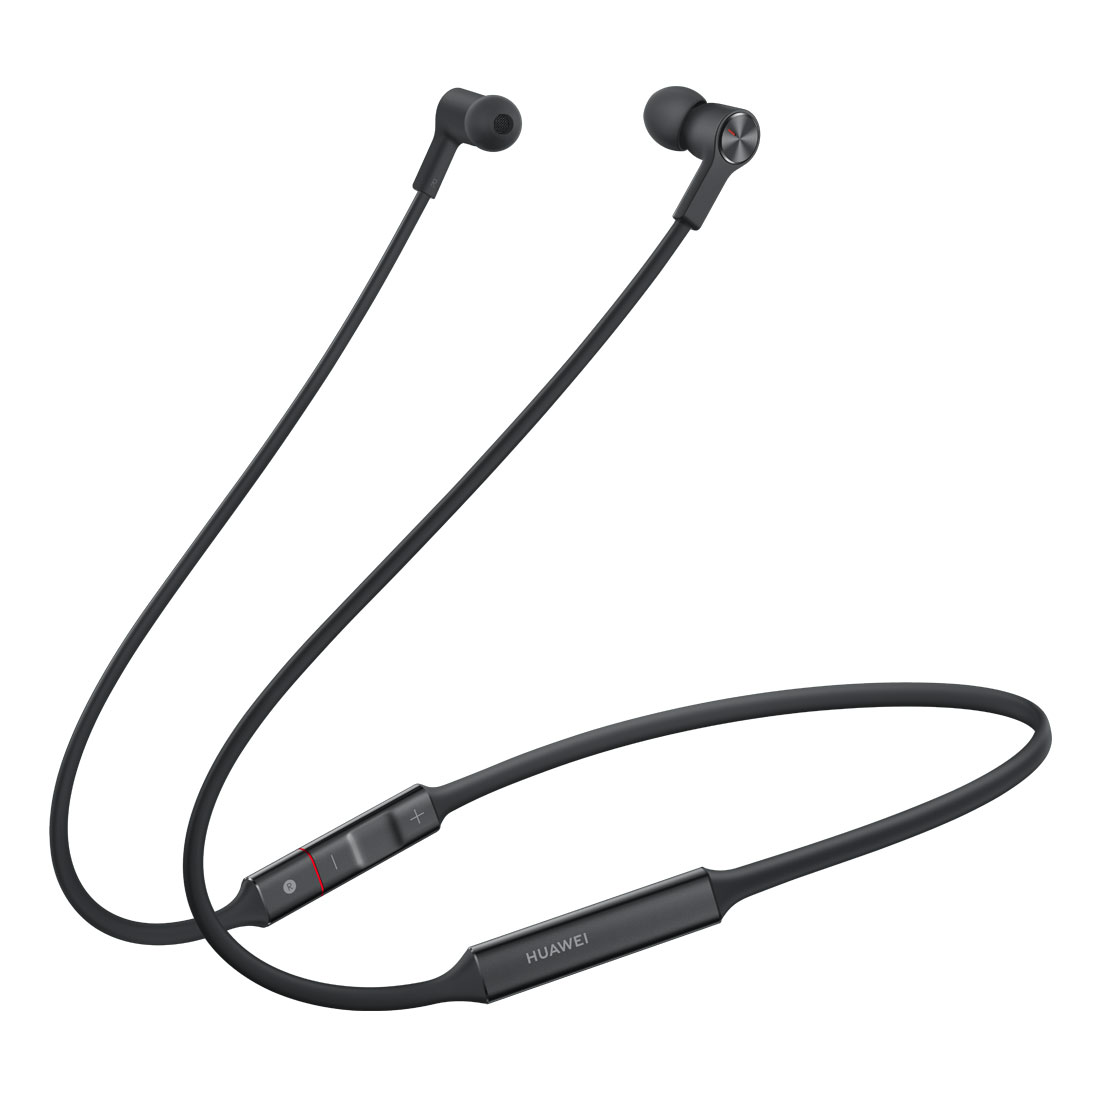 Huawei FreeLace Waterproof Wireless In-Ear Headphone - Graphite Black